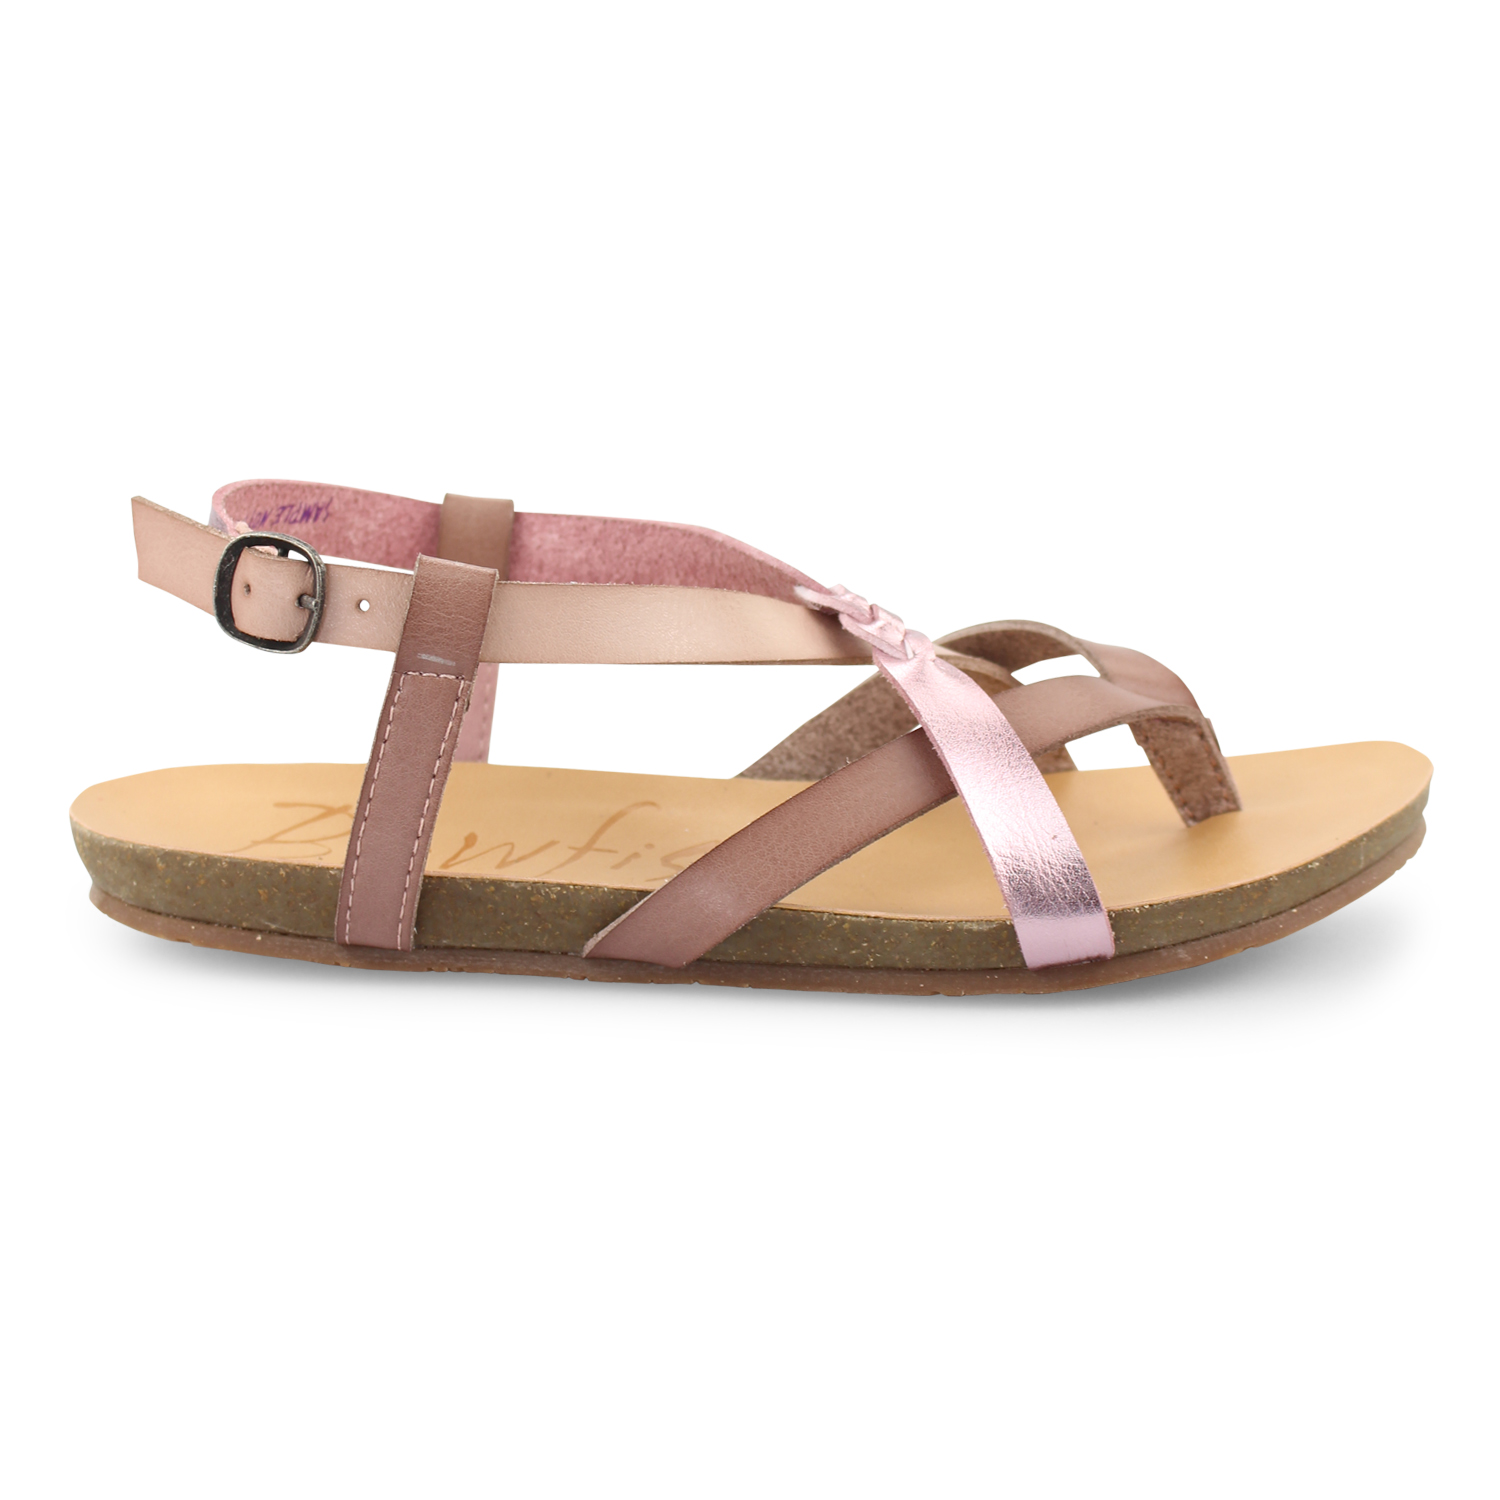 ac549a0a57f7 Granola-B - Strappy Sandal With Faux Cork Footbed